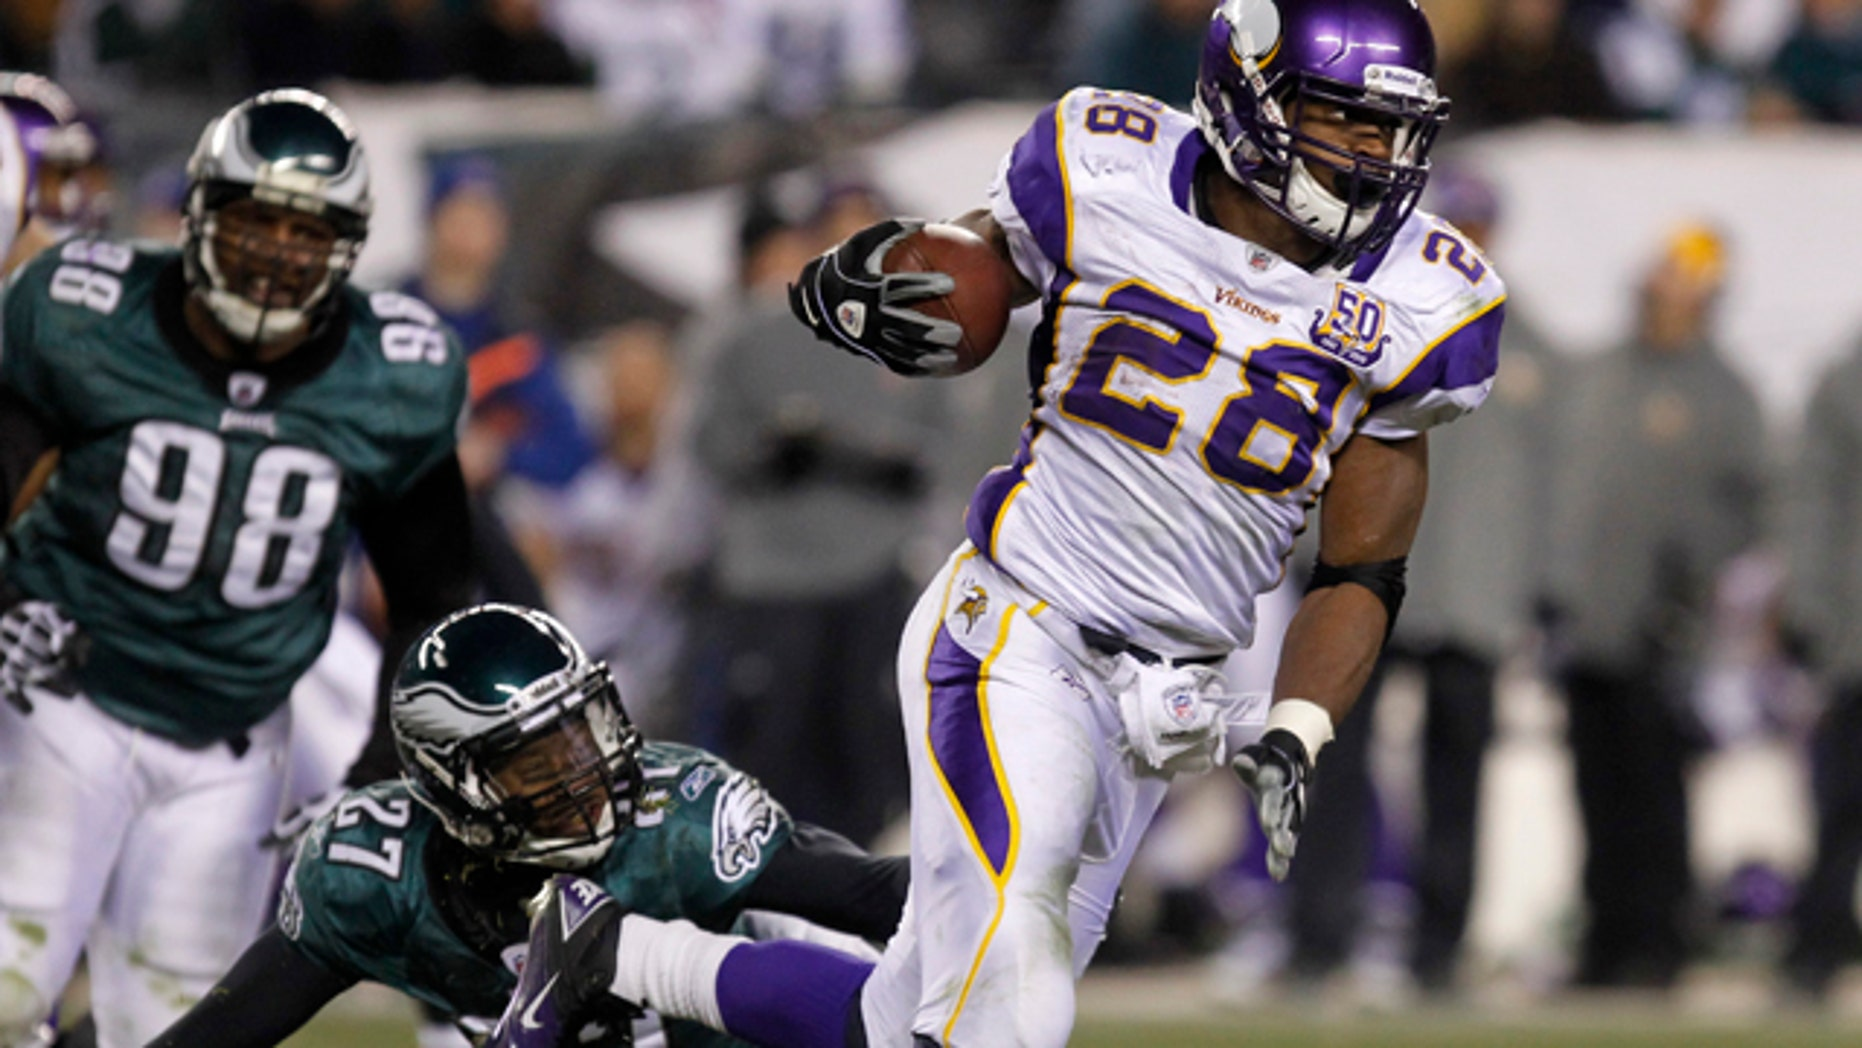 Minnesota Vikings running back Adrian Peterson (28) breaks a tackle from the Philadelphia Eagles safety Quintin Mikell (27) during the third quarter of their NFL football game in Philadelphia, Pennsylvania, December 28, 2010. REUTERS/Tim Shaffer (UNITED STATES - Tags: SPORT FOOTBALL)